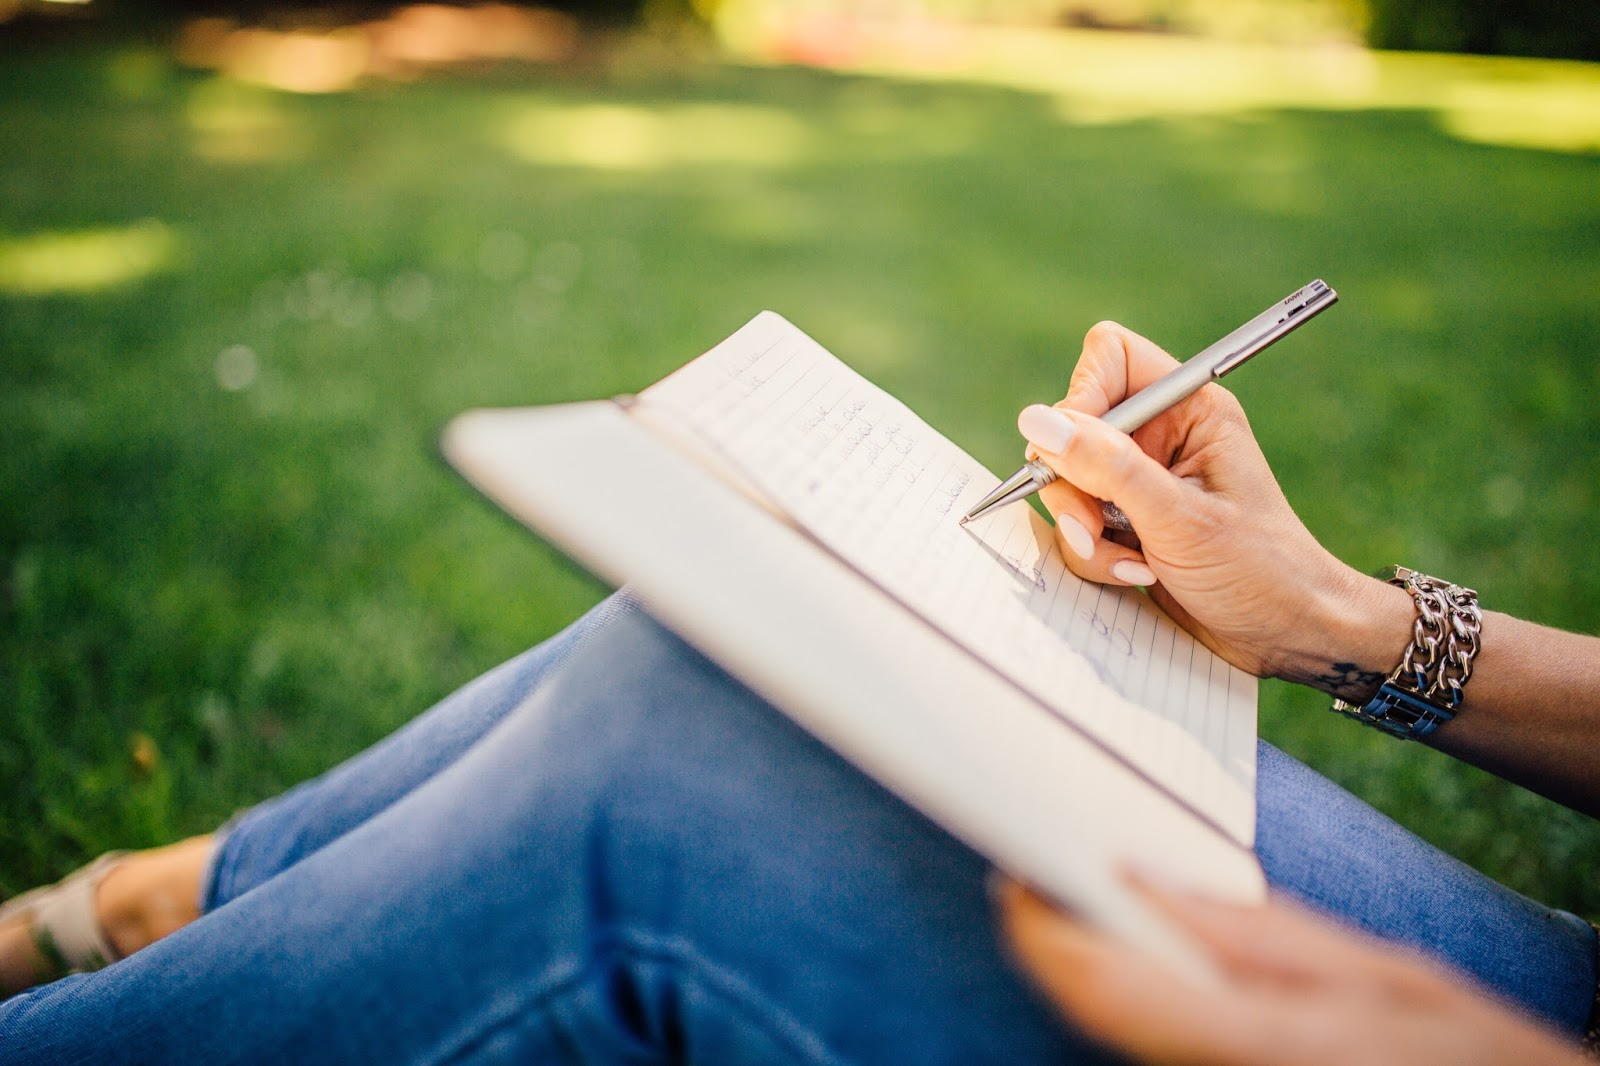 Girl sitting on the grass writing in a notebook